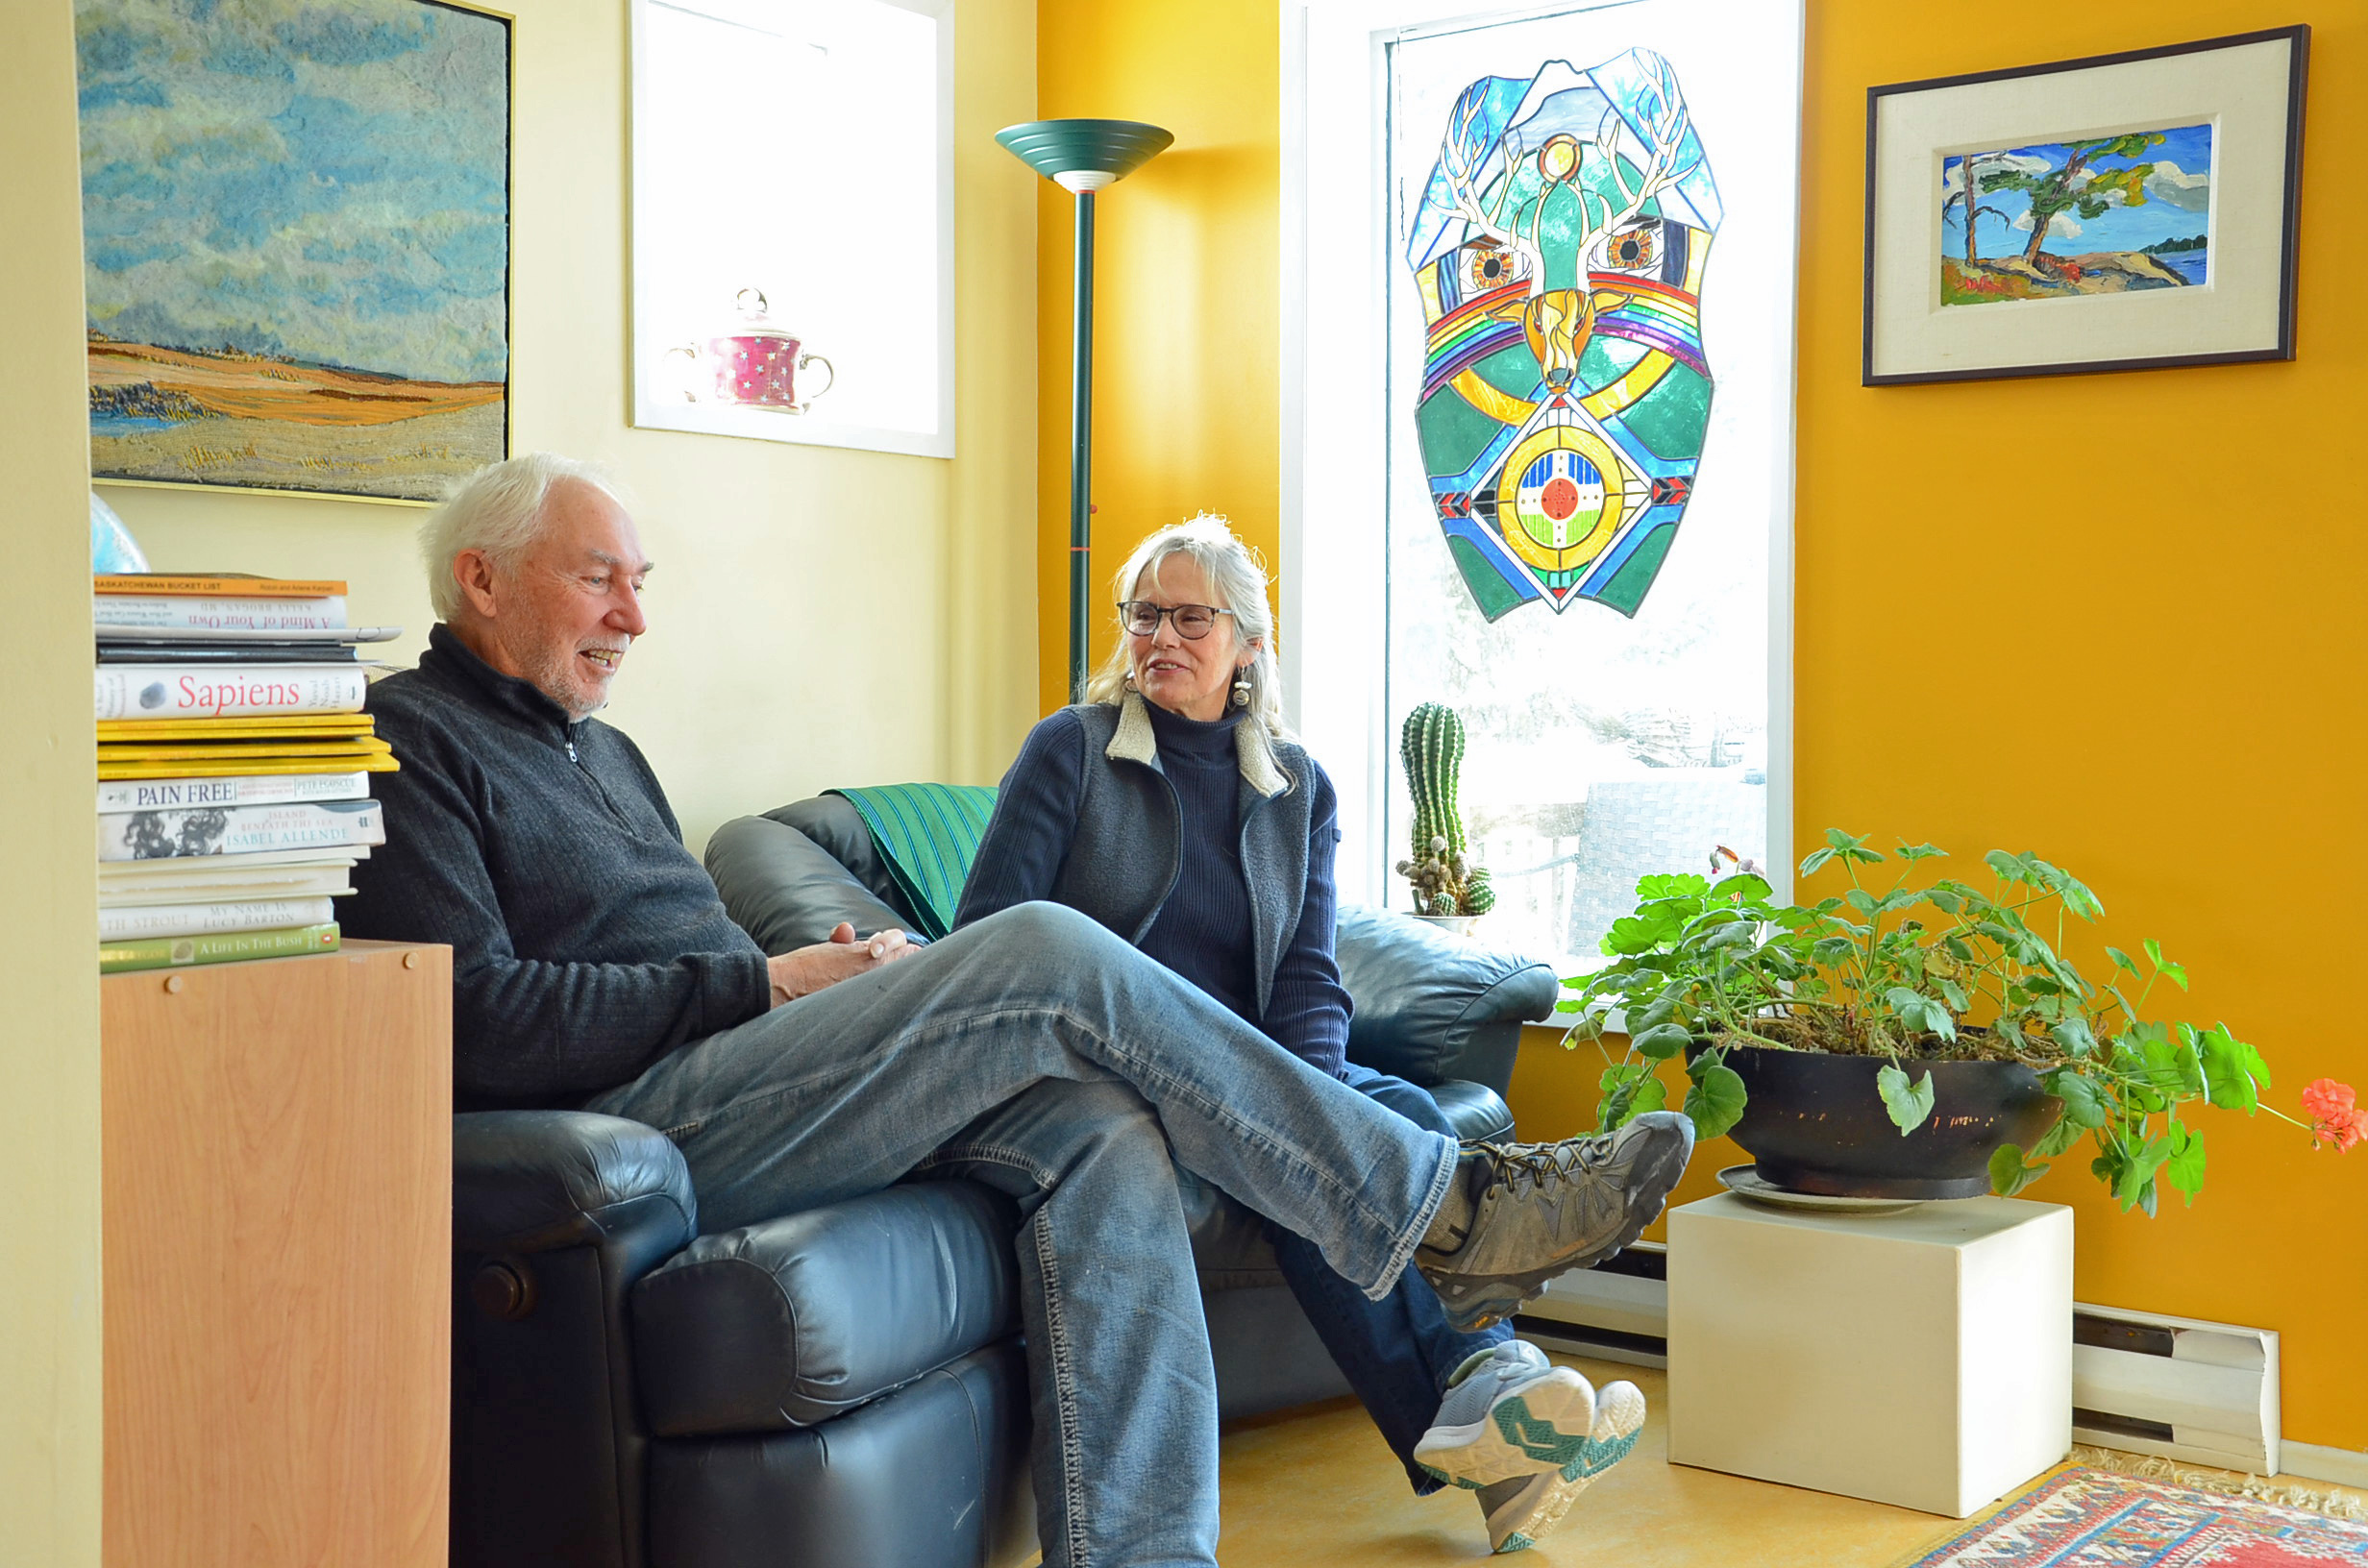 Mel Bolen and Karen Holden relax in their sitting room, above the Northstar Art Gallery. (Bridget Yard/CBC)